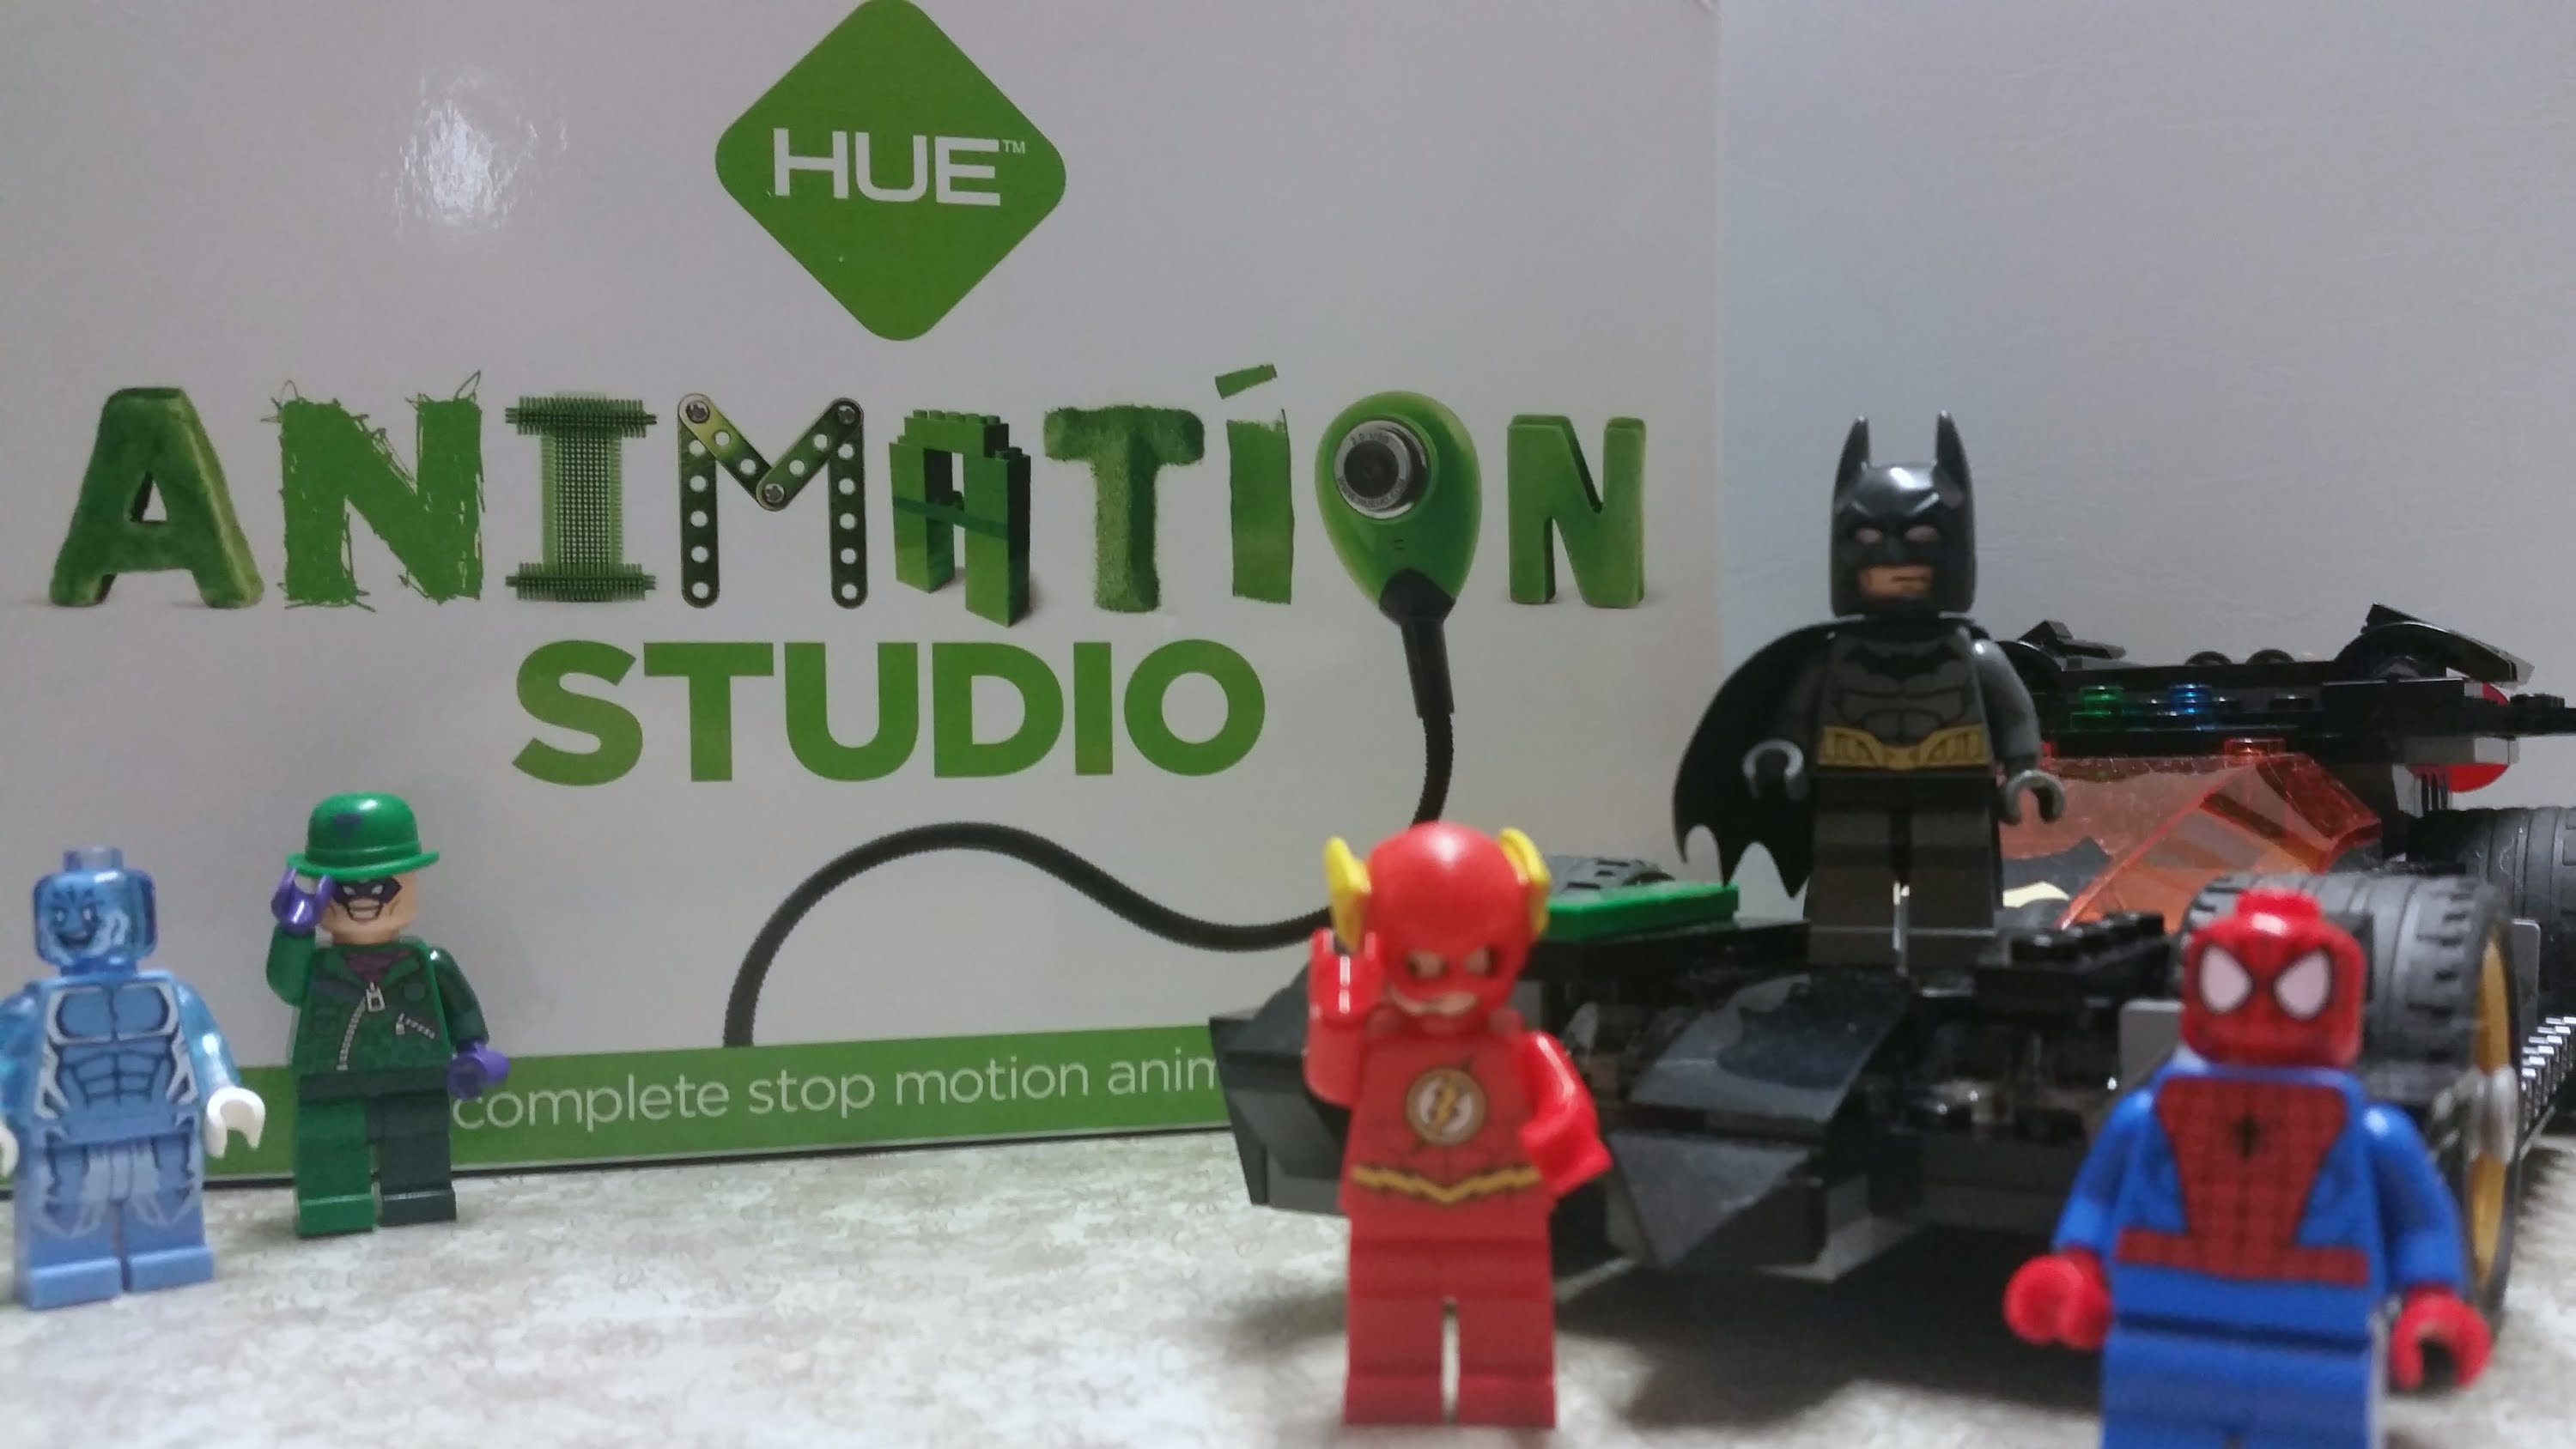 Hue Animation Studio 1